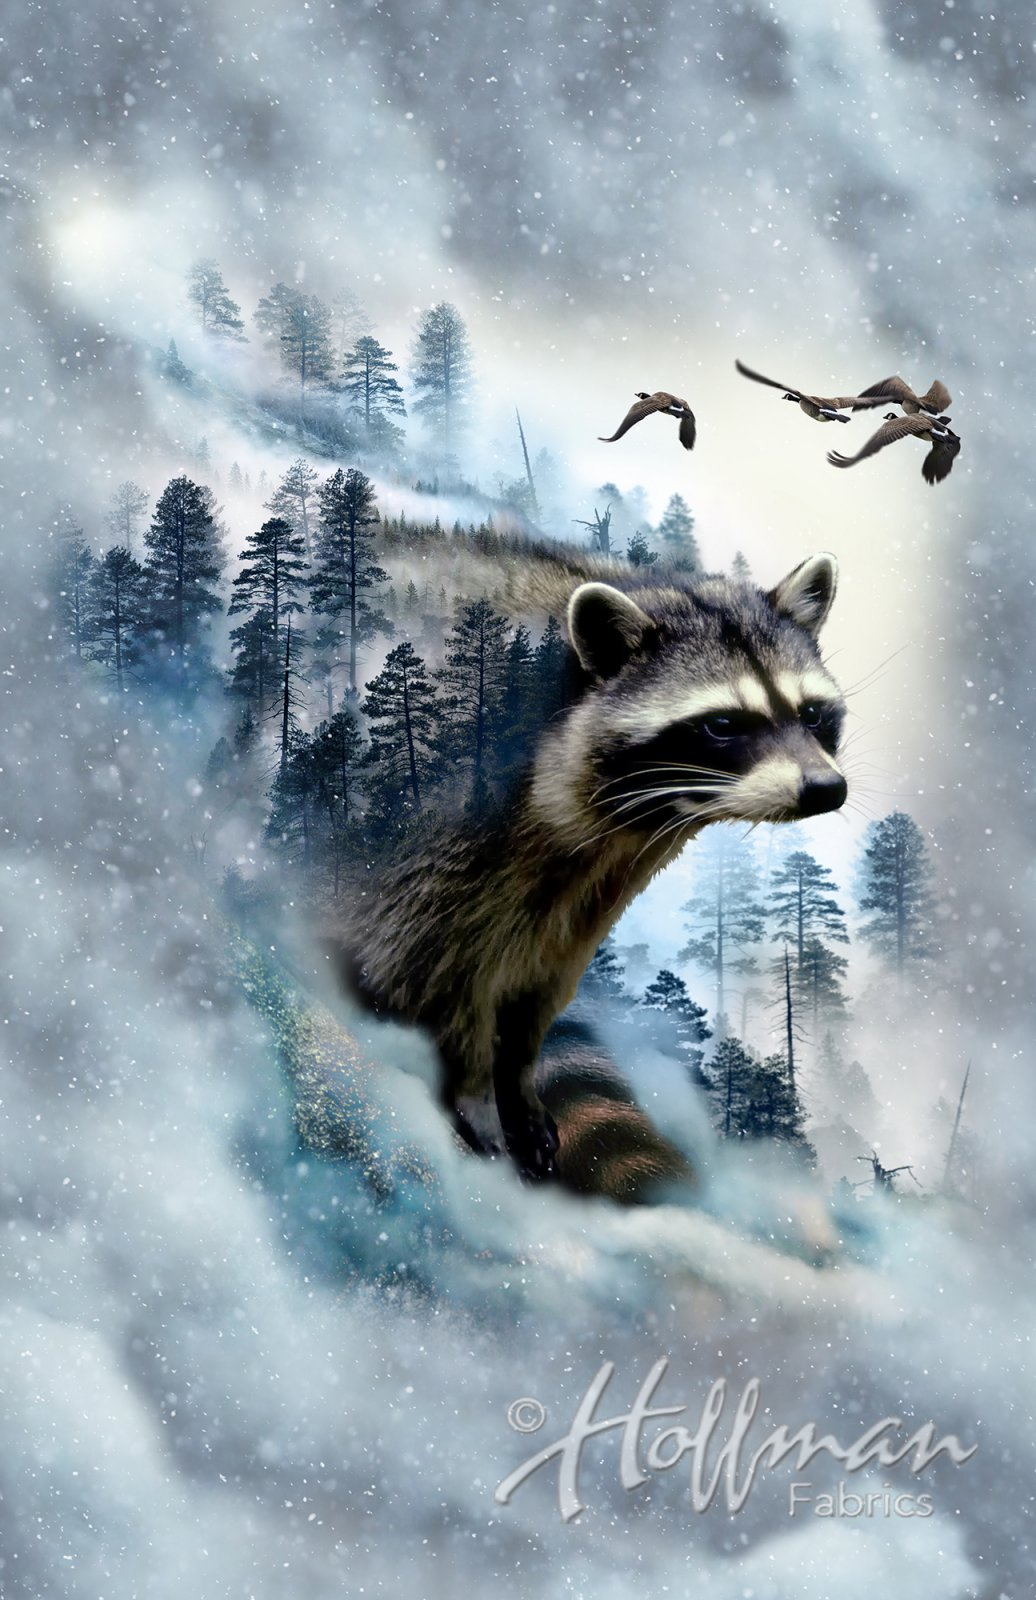 Call of the Wild - Racoon